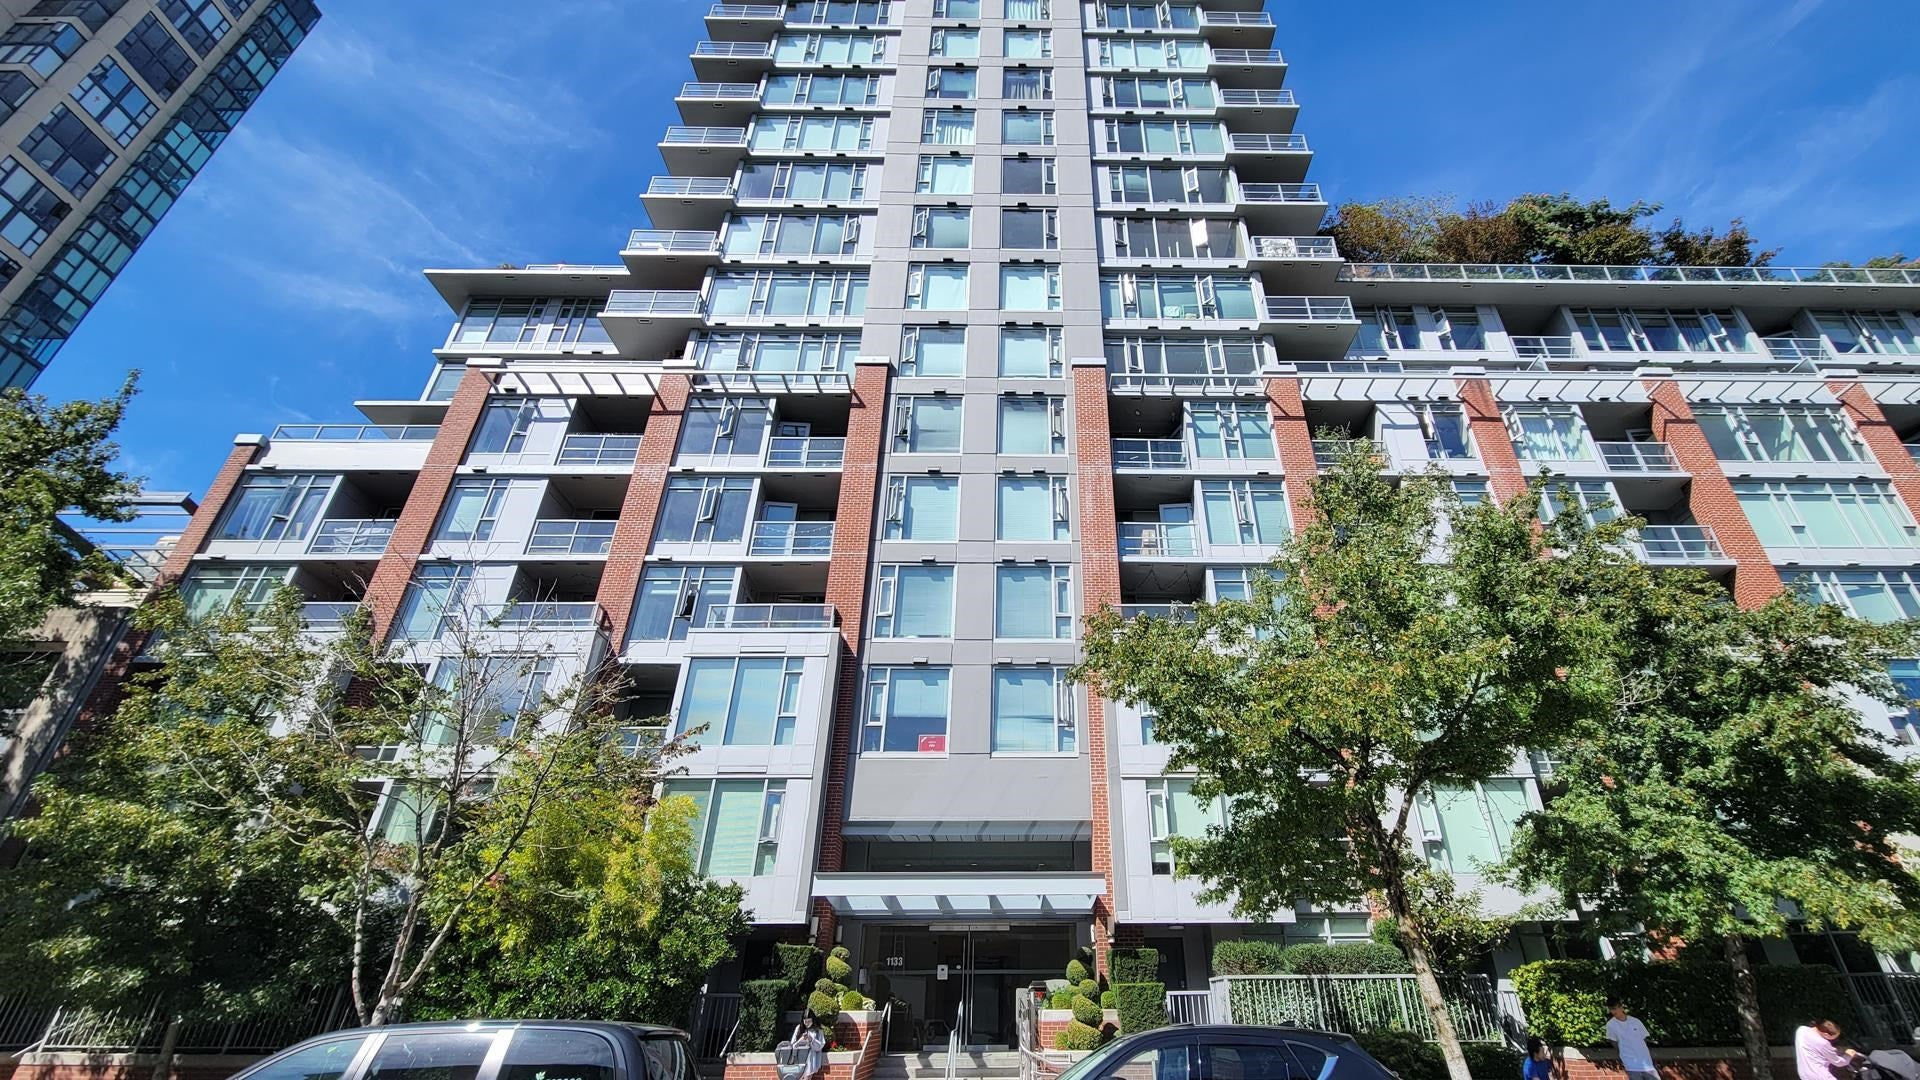 1307 1133 HOMER STREET - Yaletown Apartment/Condo for sale, 1 Bedroom (R2613894) - #1